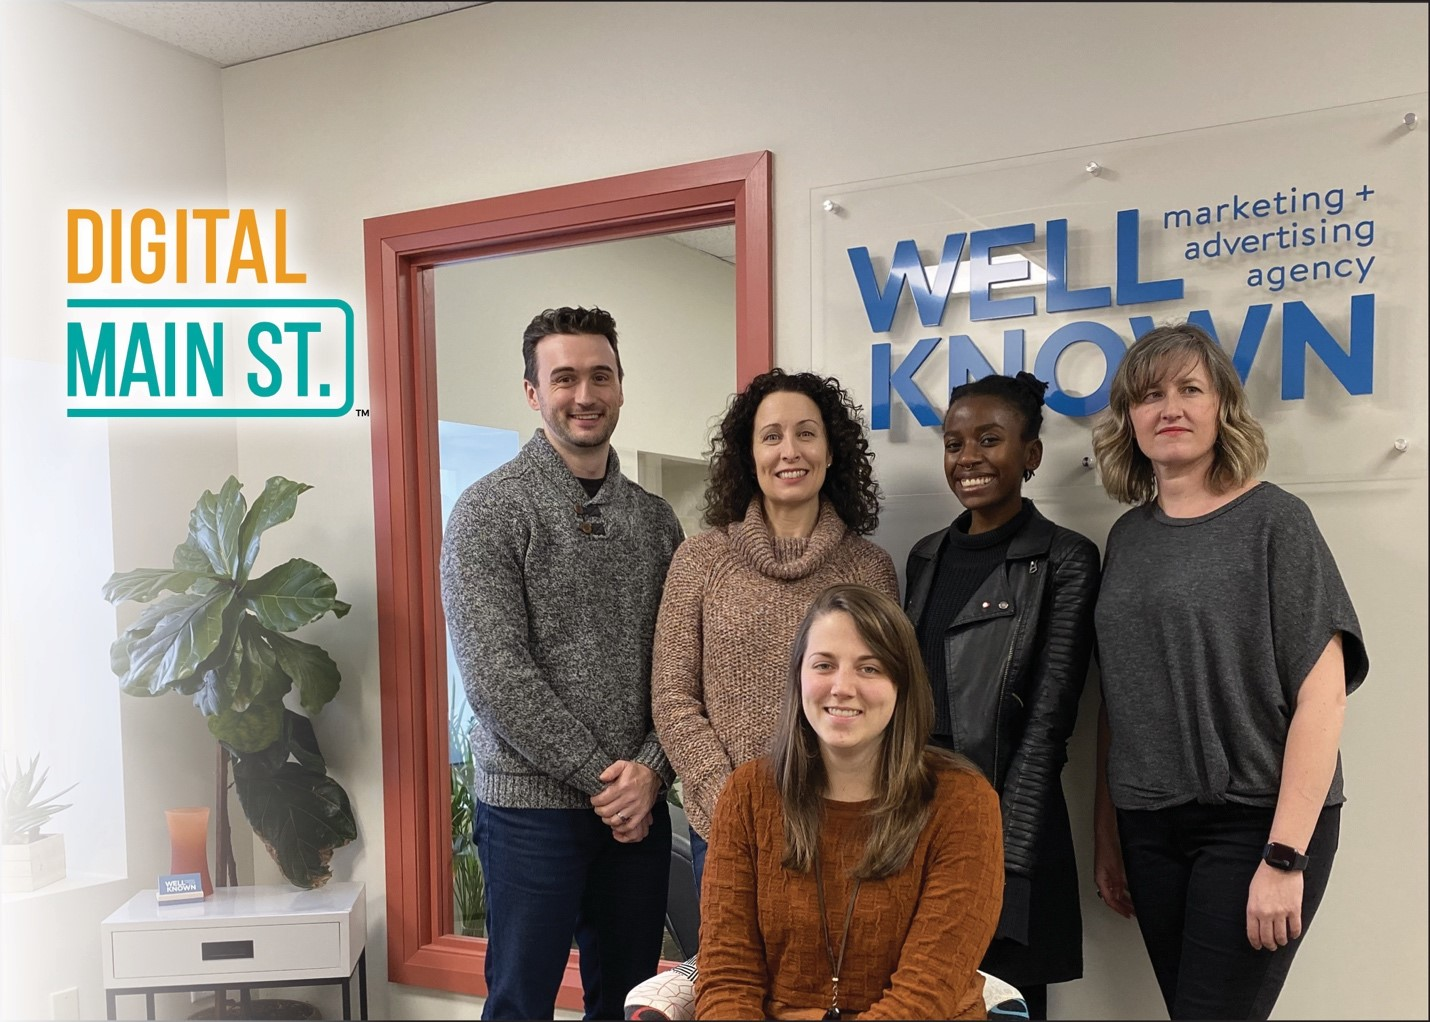 Front: Morgan Richter, Manager of the Downtown Huntsville BIA and Digital Main Street Program Manager. Back, Digital Service Squad: Dan Powers, Kyra Watters, Marie Kamukuny, and Emily Blackman